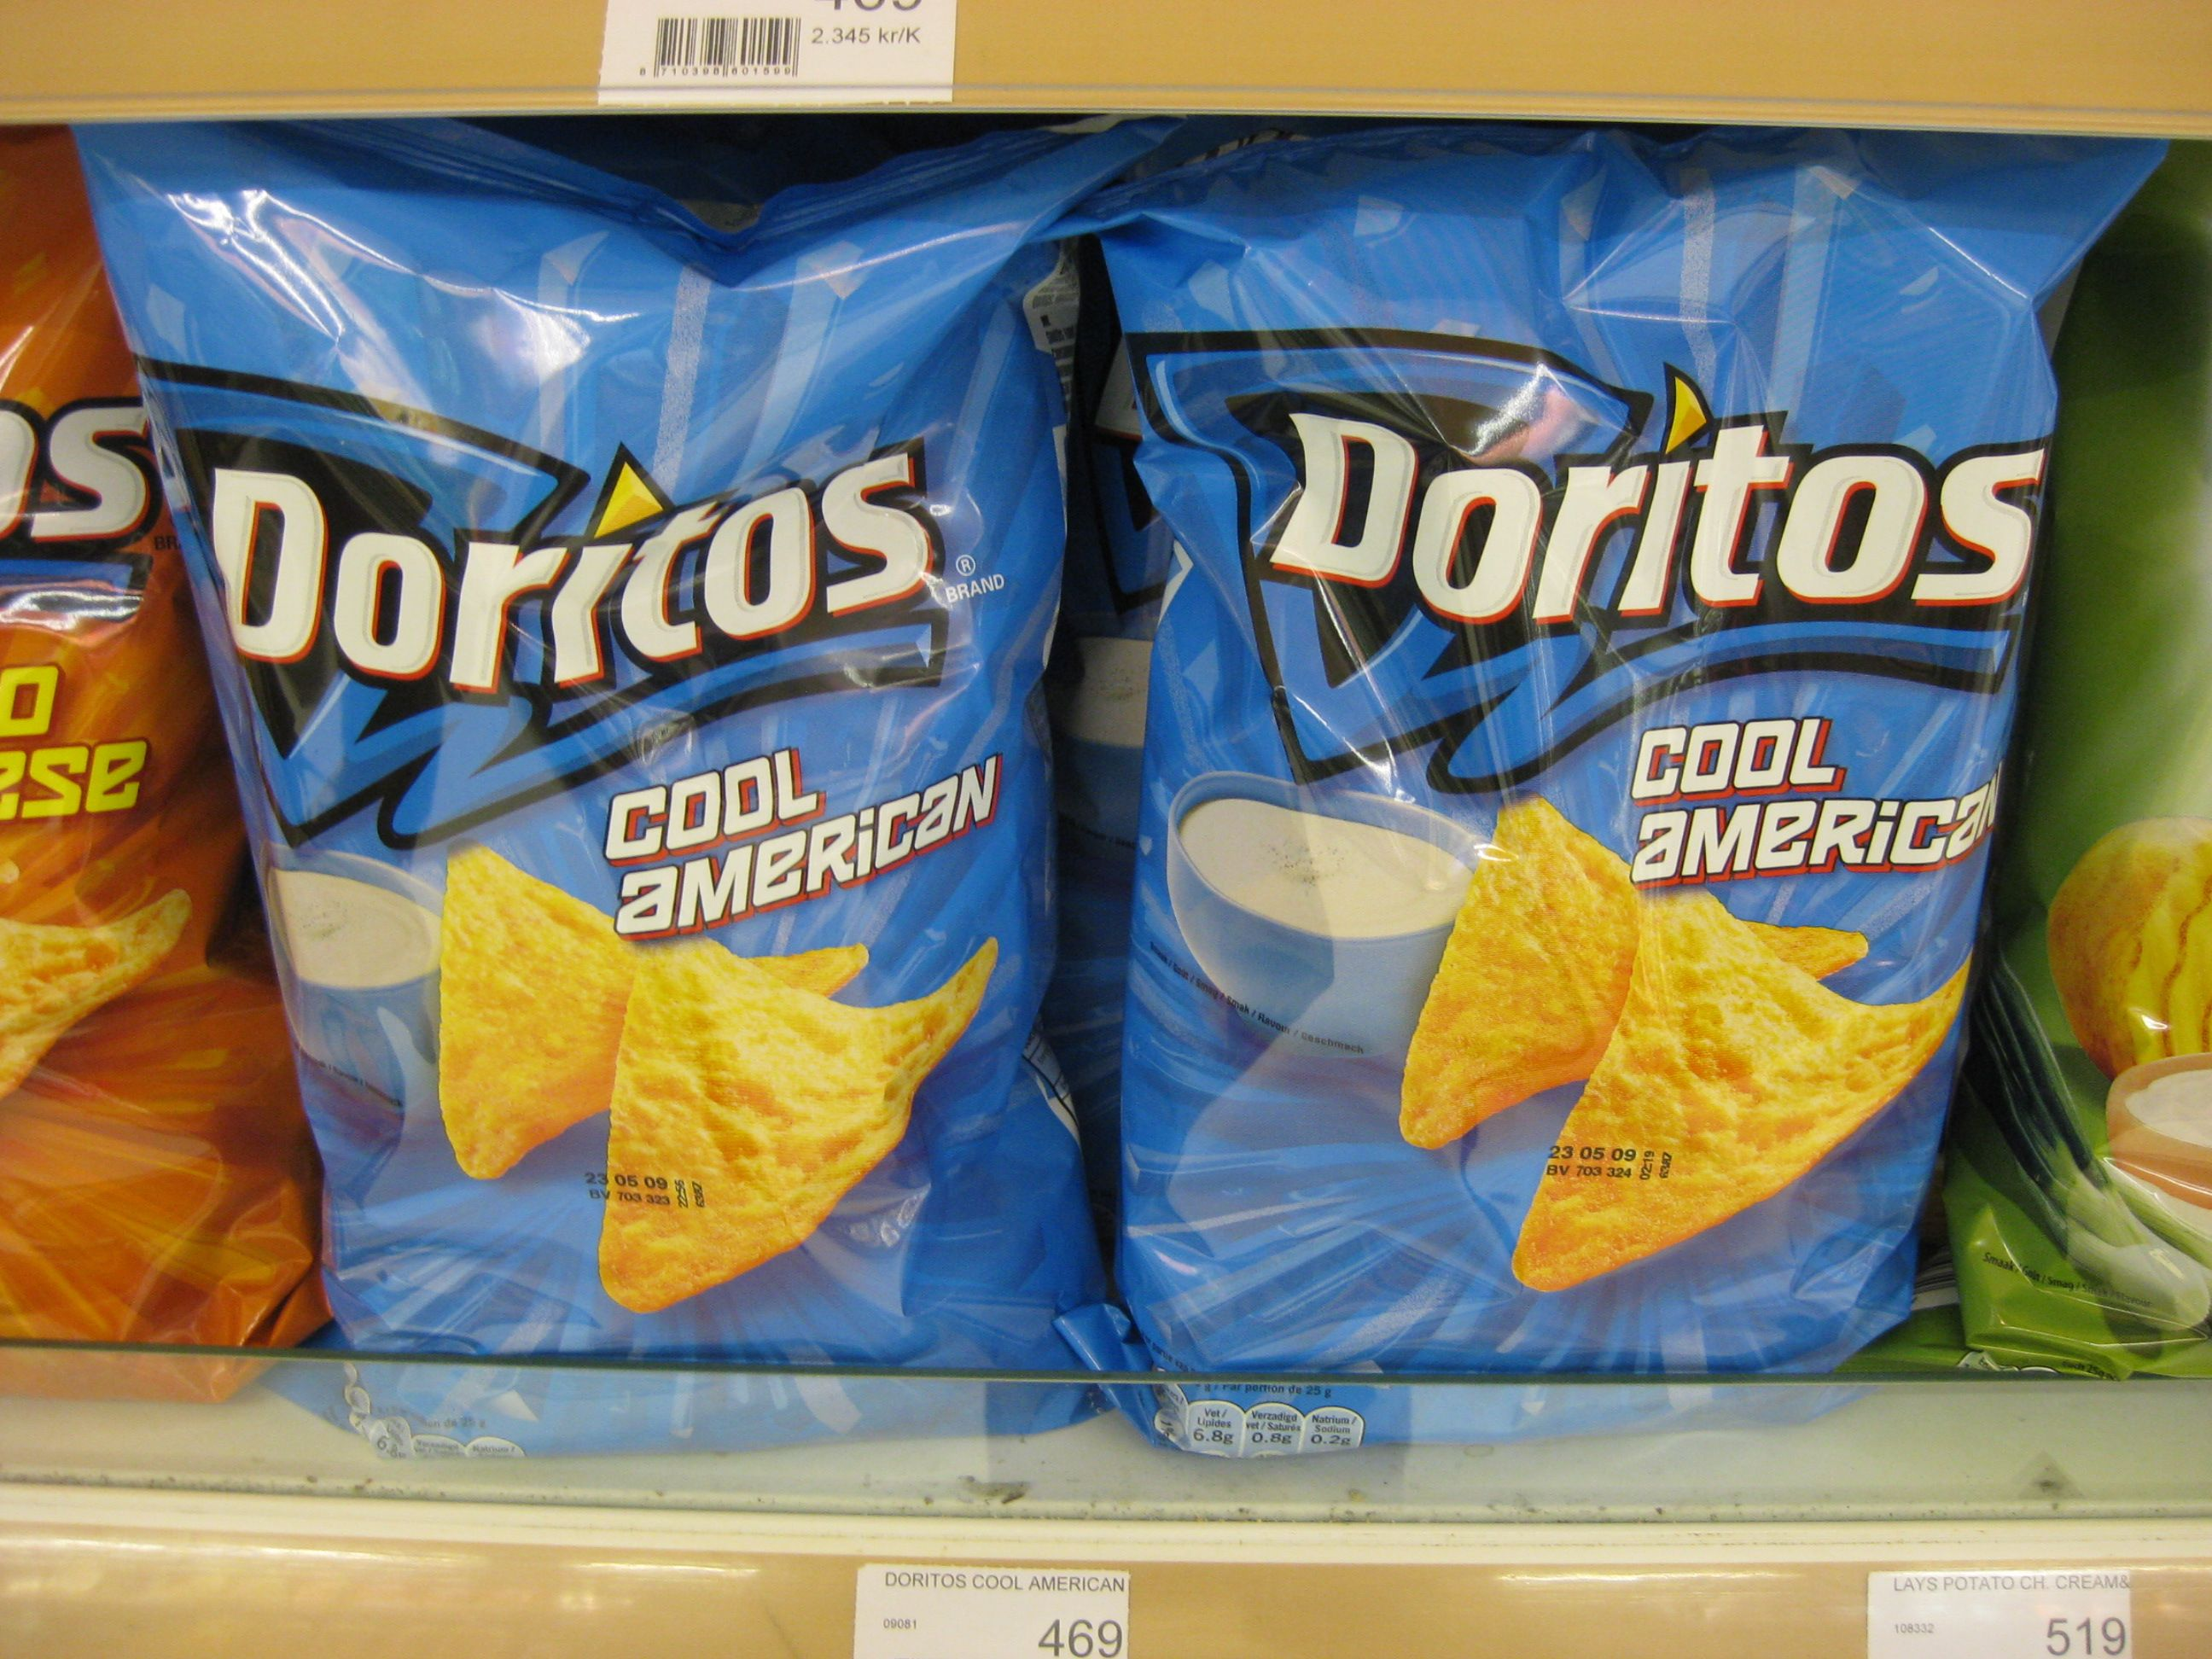 8ea8fa75812eb61991cc0ab3265d0284 in eurpoe, 'cool ranch' doritos are called 'cool american' what